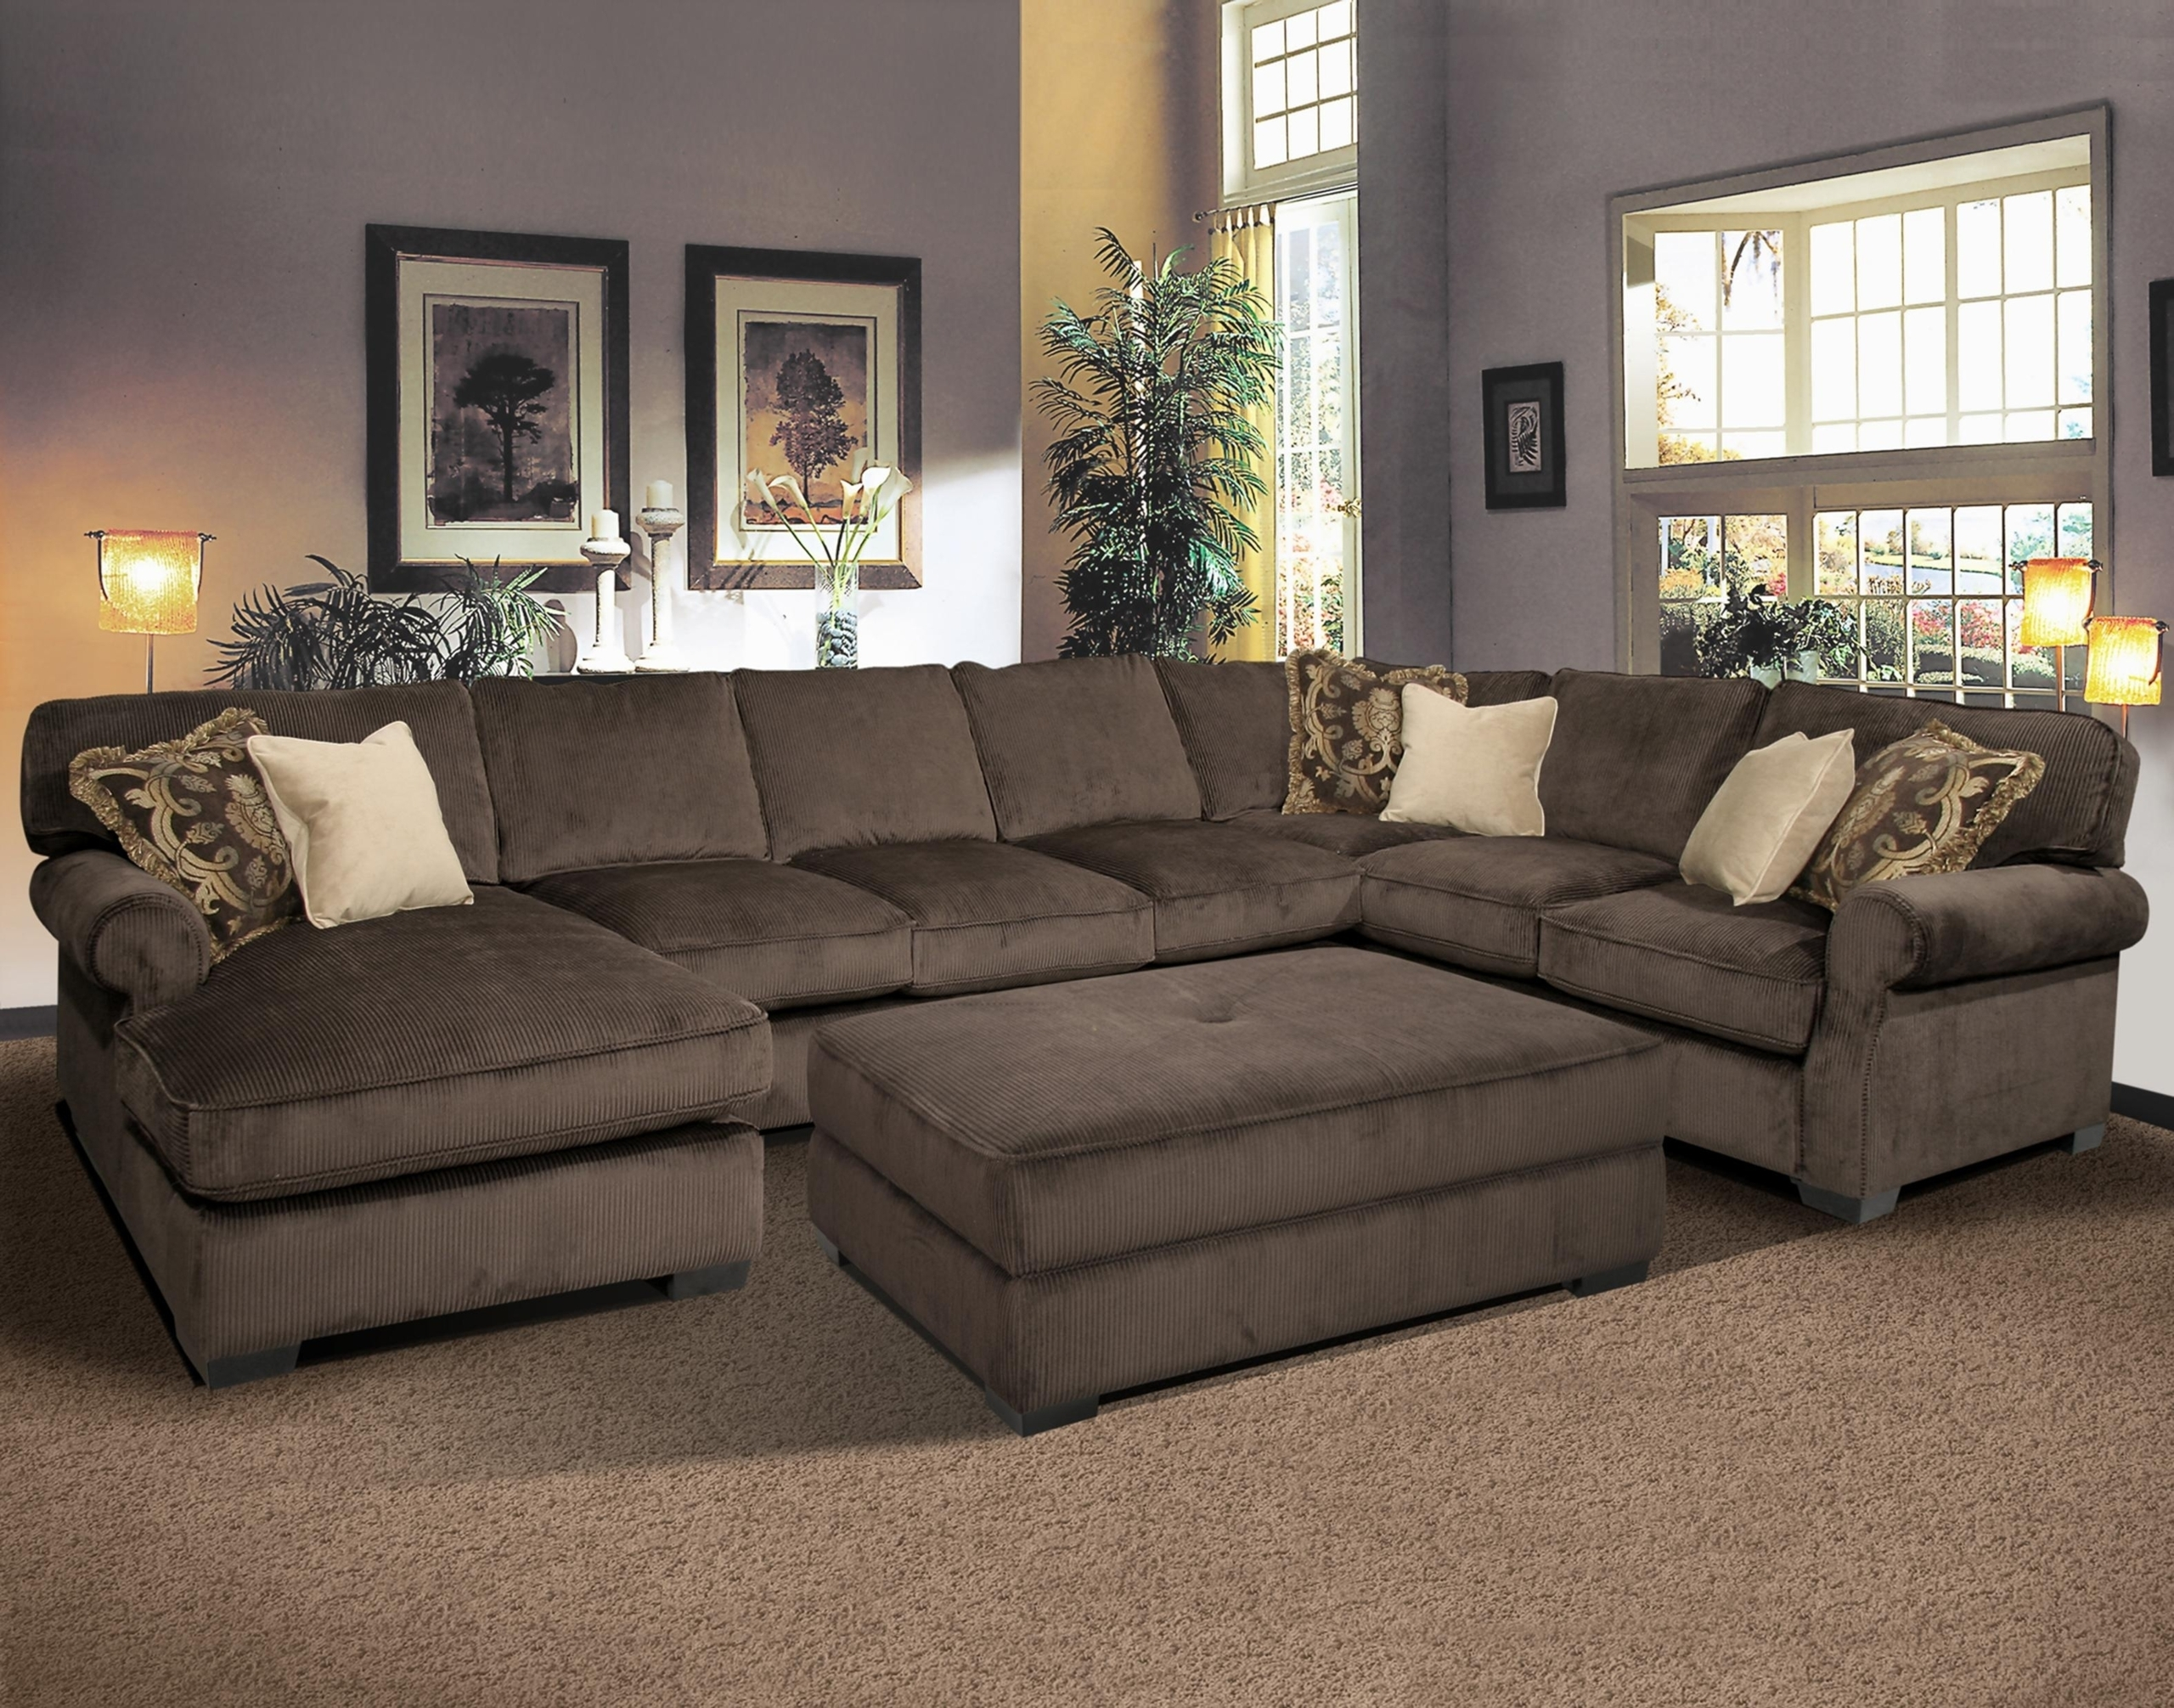 Extra Large Sectional Sofa You Ll Love In 2021 Visualhunt